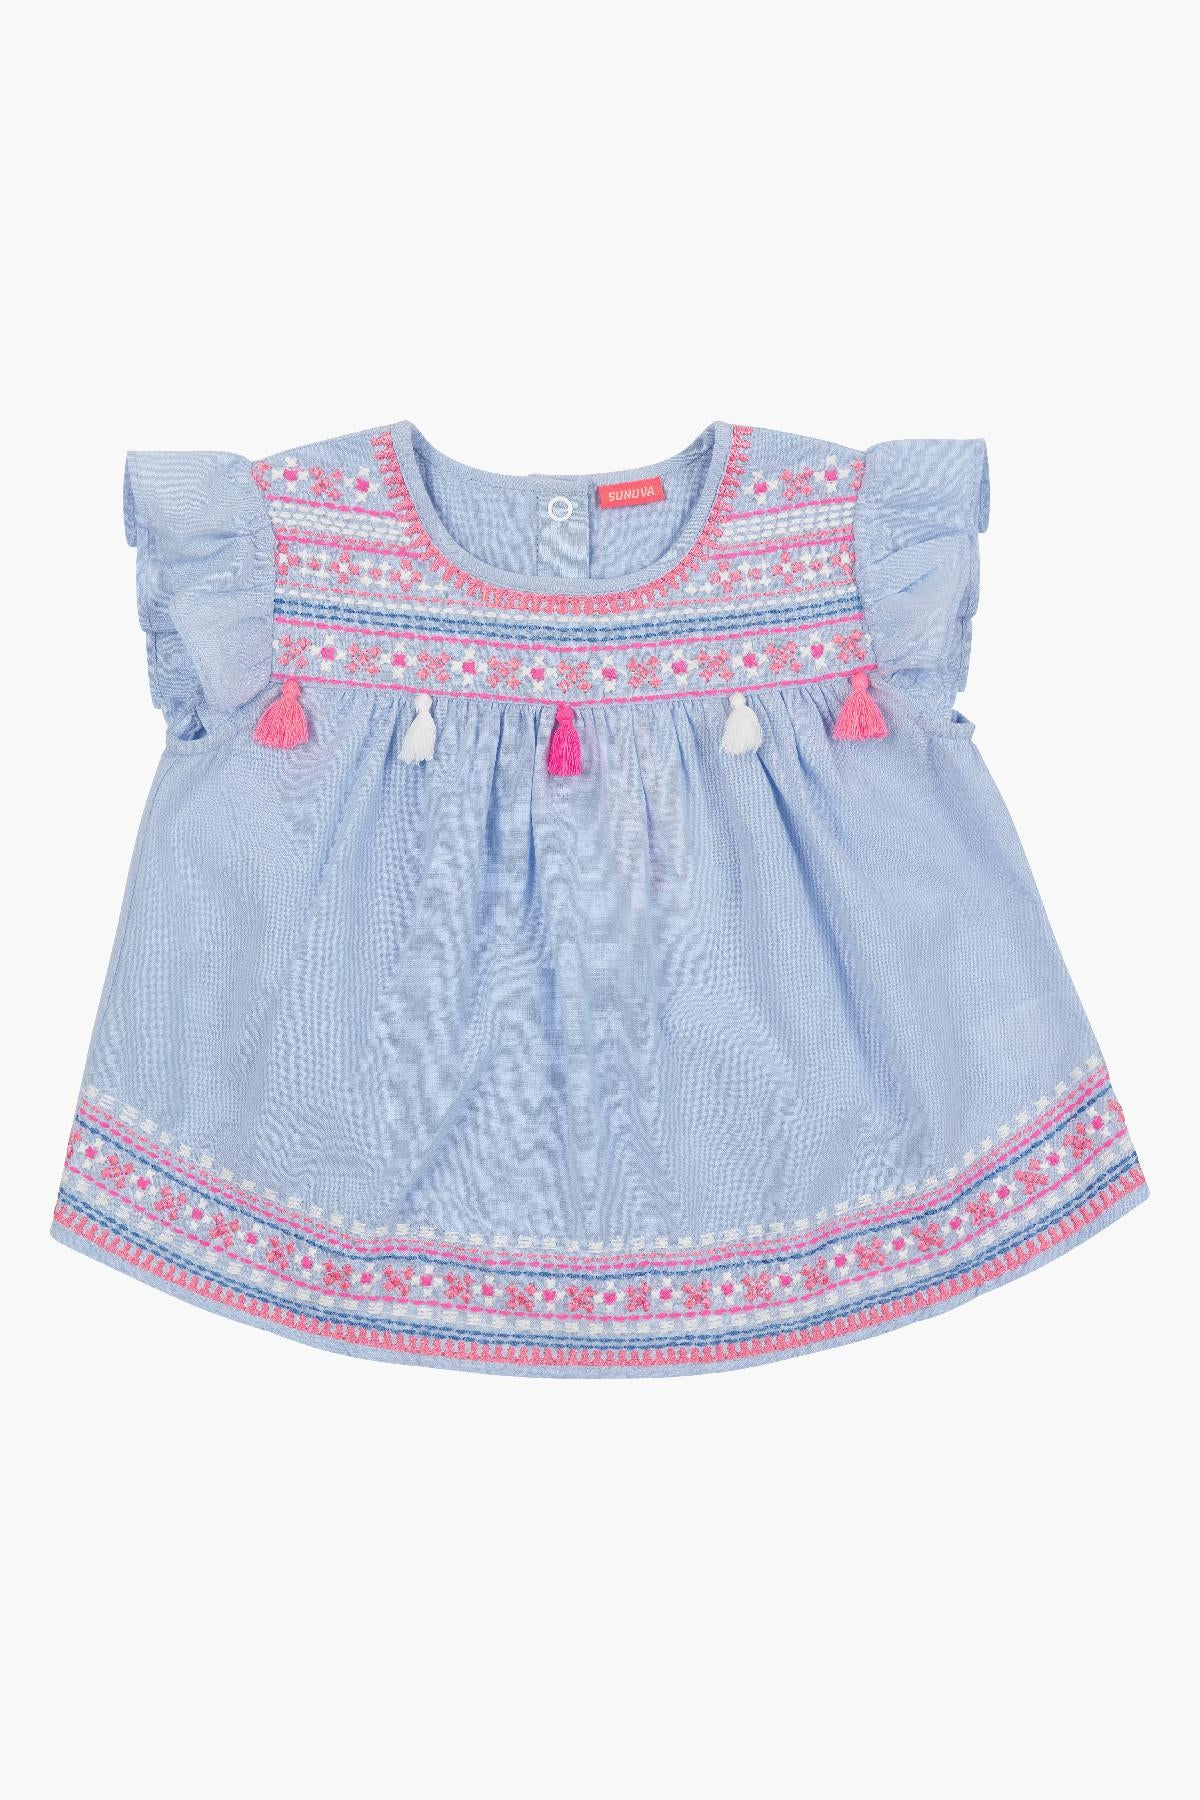 Sunuva Blue Embroidered Baby Girls Set